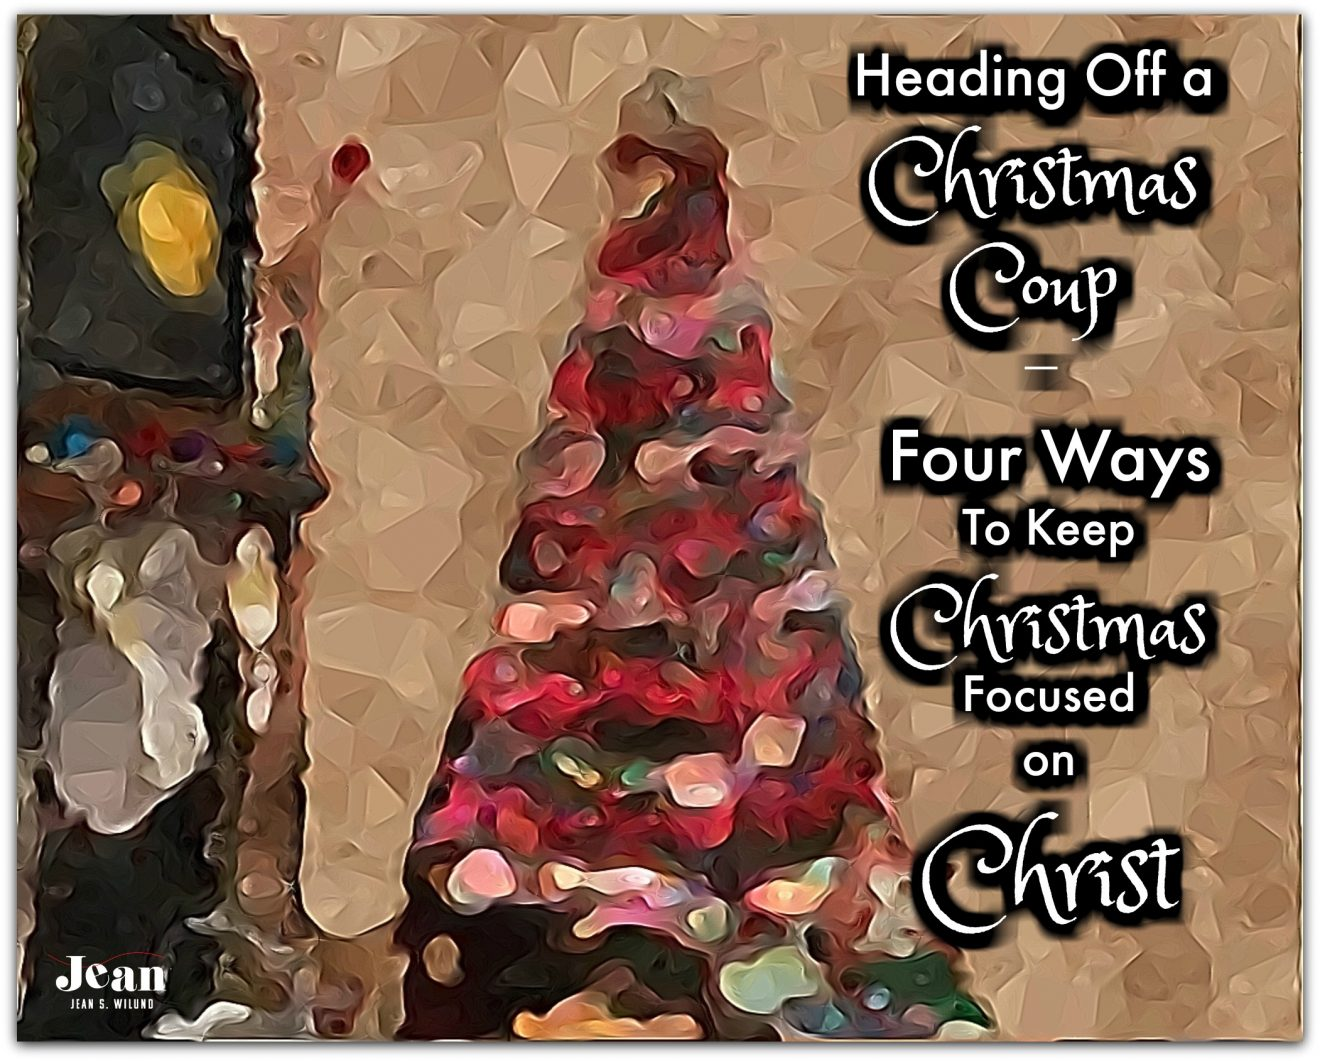 Heading Off a Christmas Coup –  Four Ways To Keep Christmas Focused on Christ